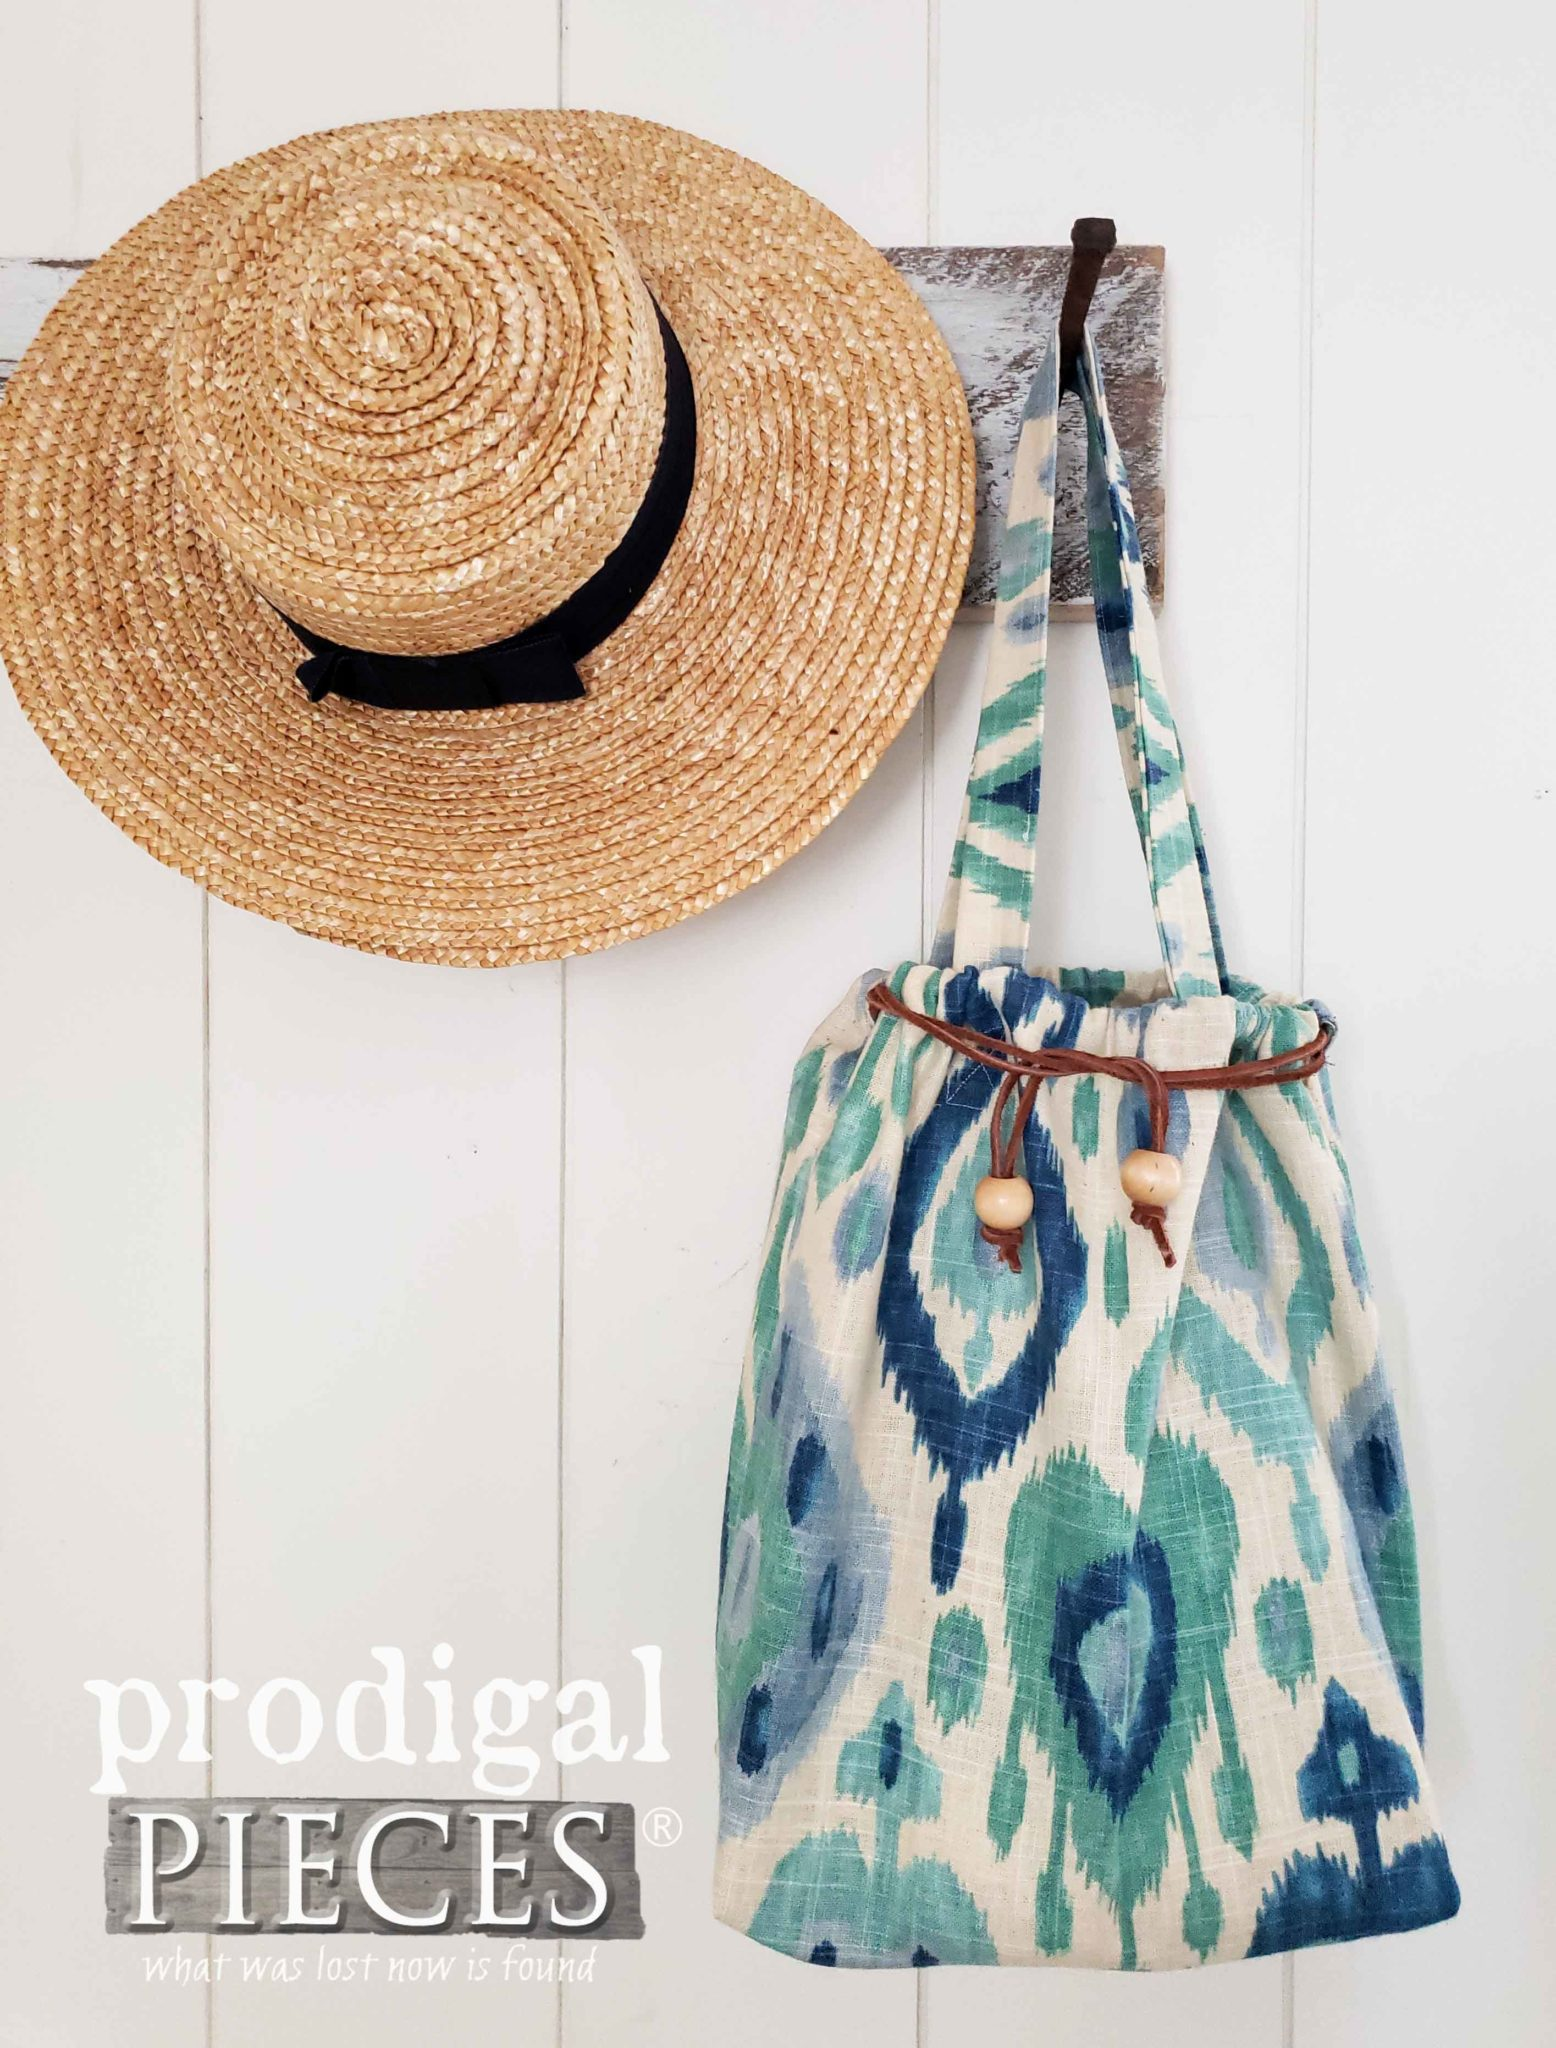 Handmade Boho Style Ikat Drawstring Bag by Larissa of Prodigal Pieces | prodigalpieces.com #prodigalpieces #handmade #fashion